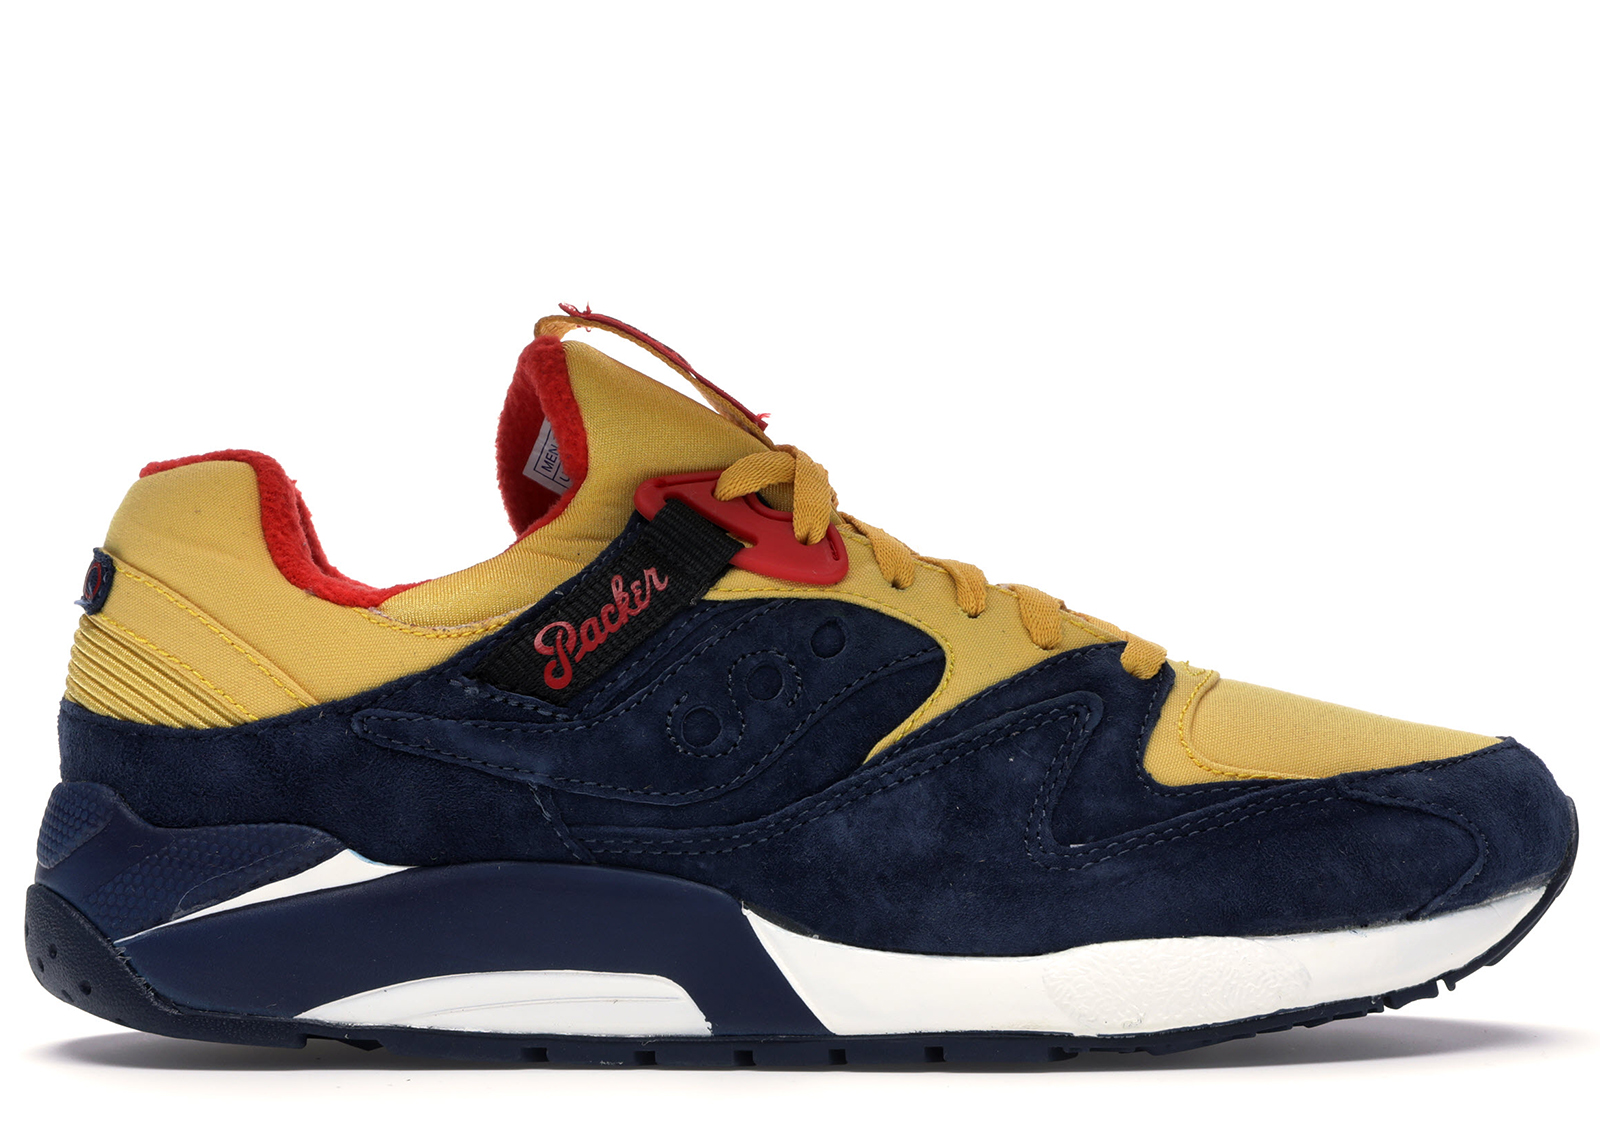 Saucony Size 14 Shoes \u0026 Deadstock Sneakers